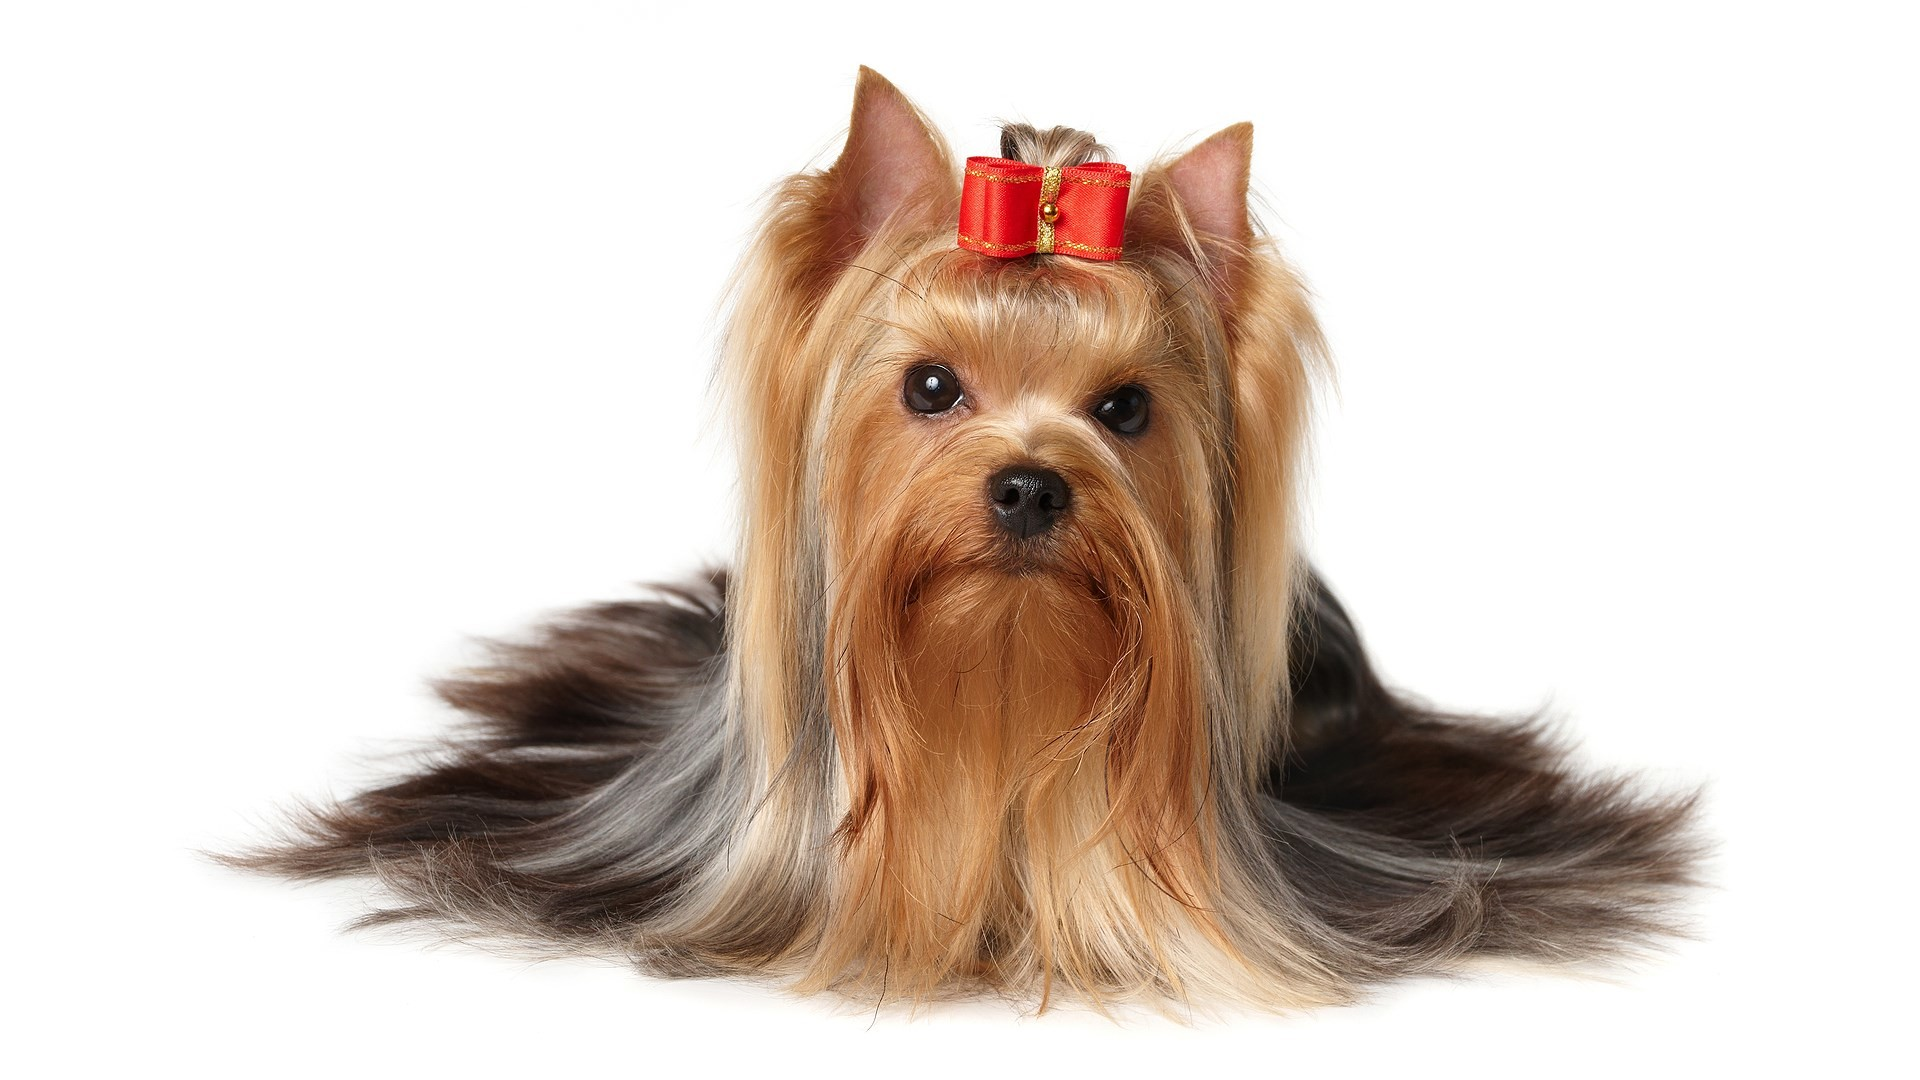 1920x1080 2017-03-01 - yorkshire terrier backgrounds images, #1411804 | ololoshenka |  Pinterest | Yorkshire terrier, Yorkshire and Terrier